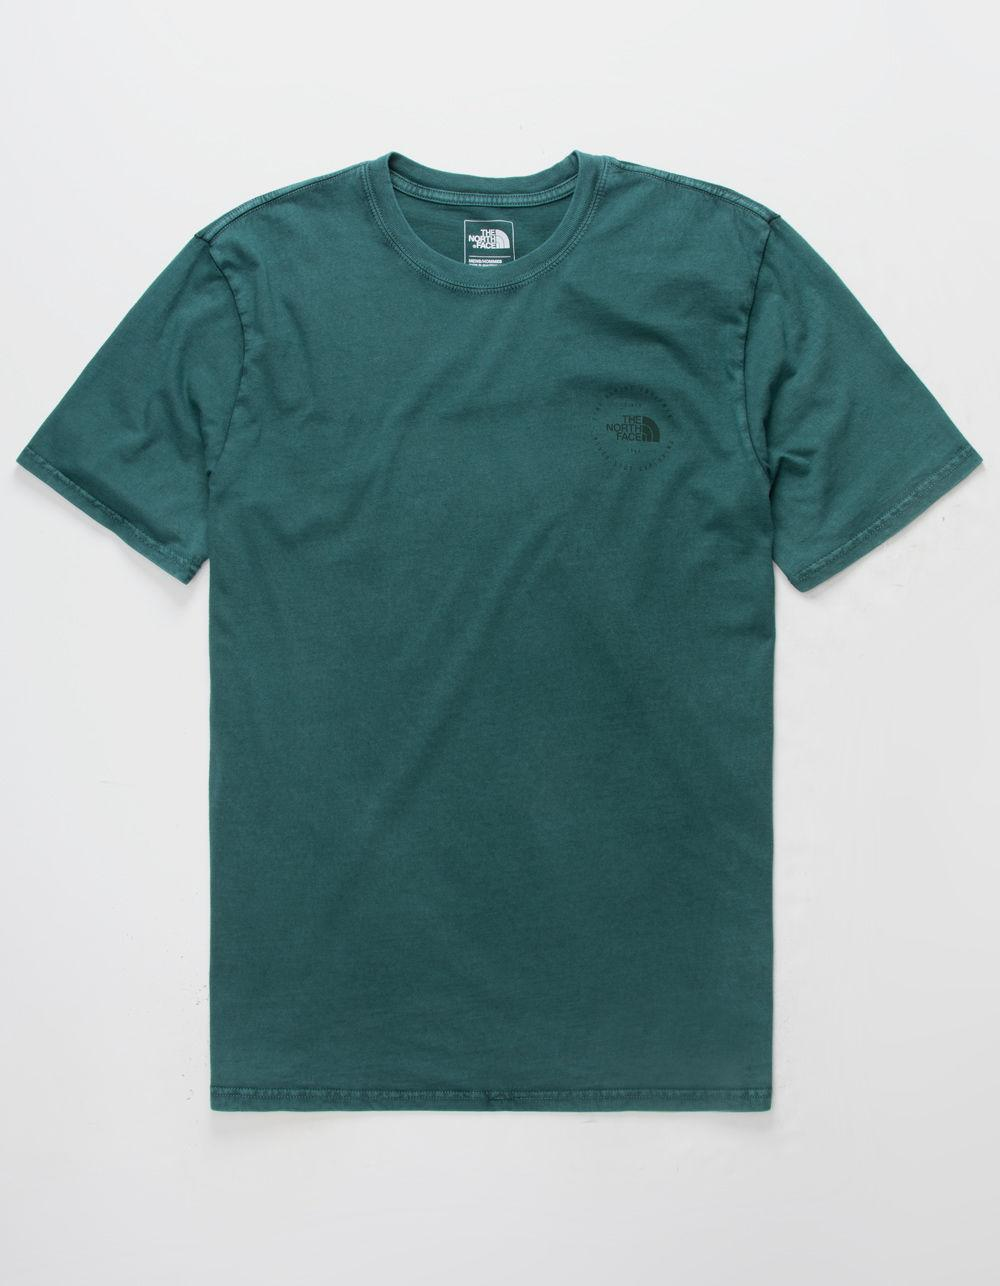 d78a8436e Lyst - The North Face Shine On Mens T-shirt in Green for Men